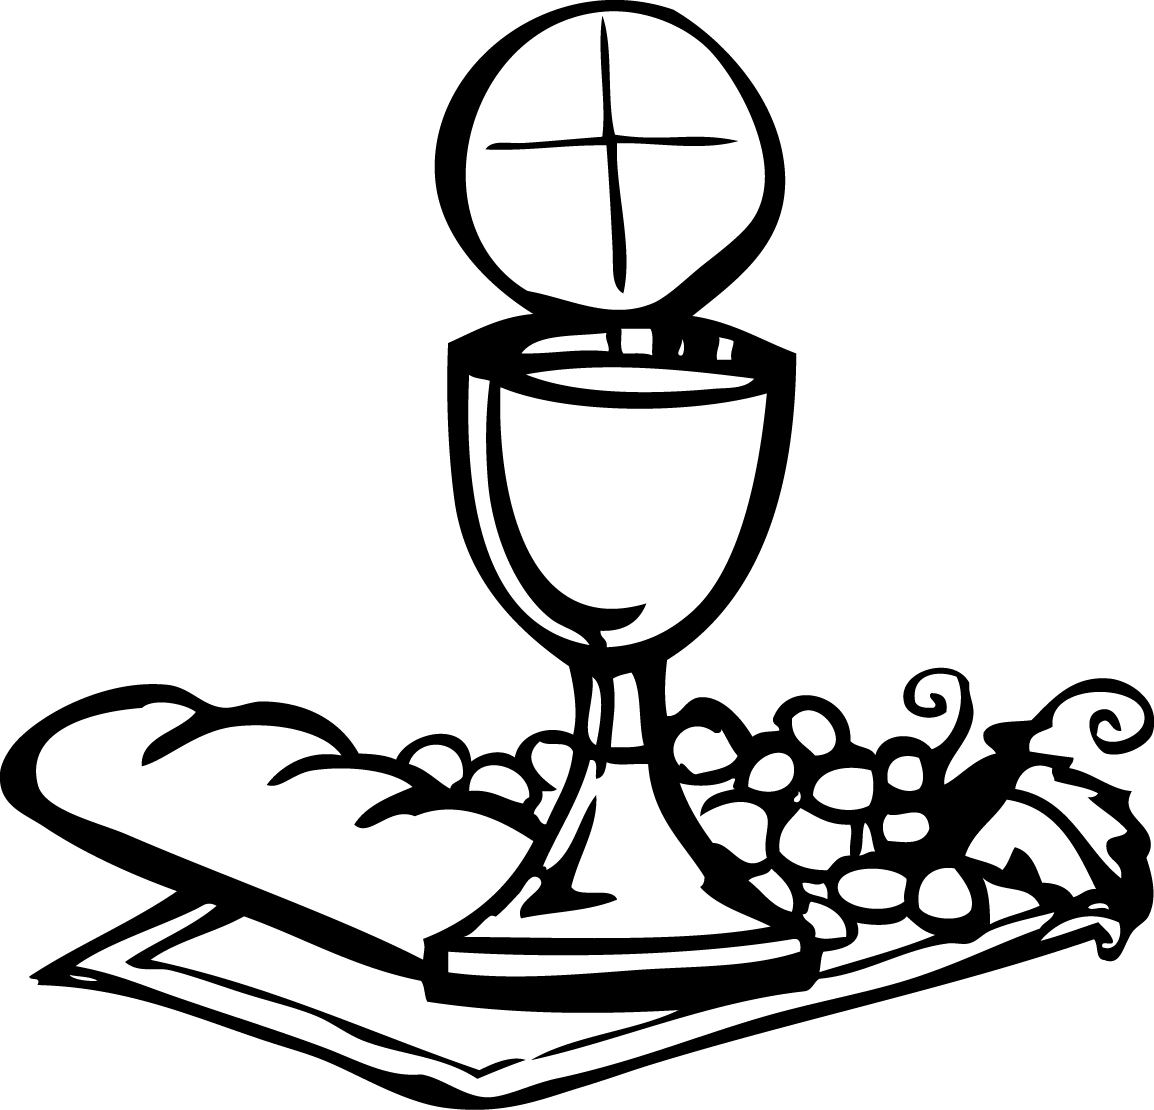 banner royalty free stock Communion . Maundy clipart boy.